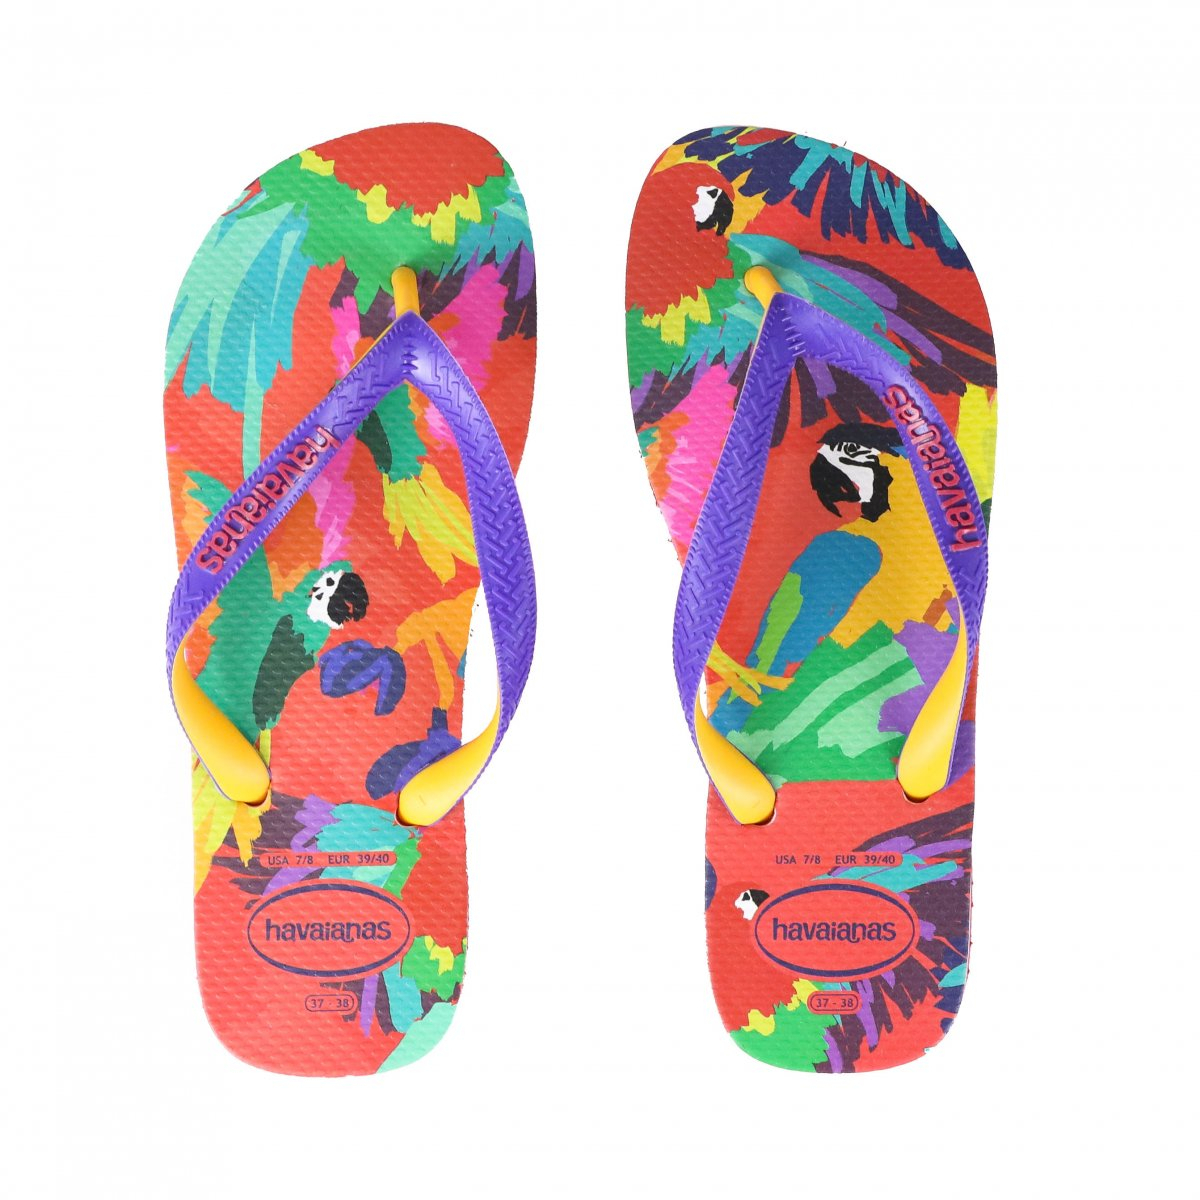 Chinelo Casual Havaianas Top Fashion Roxo